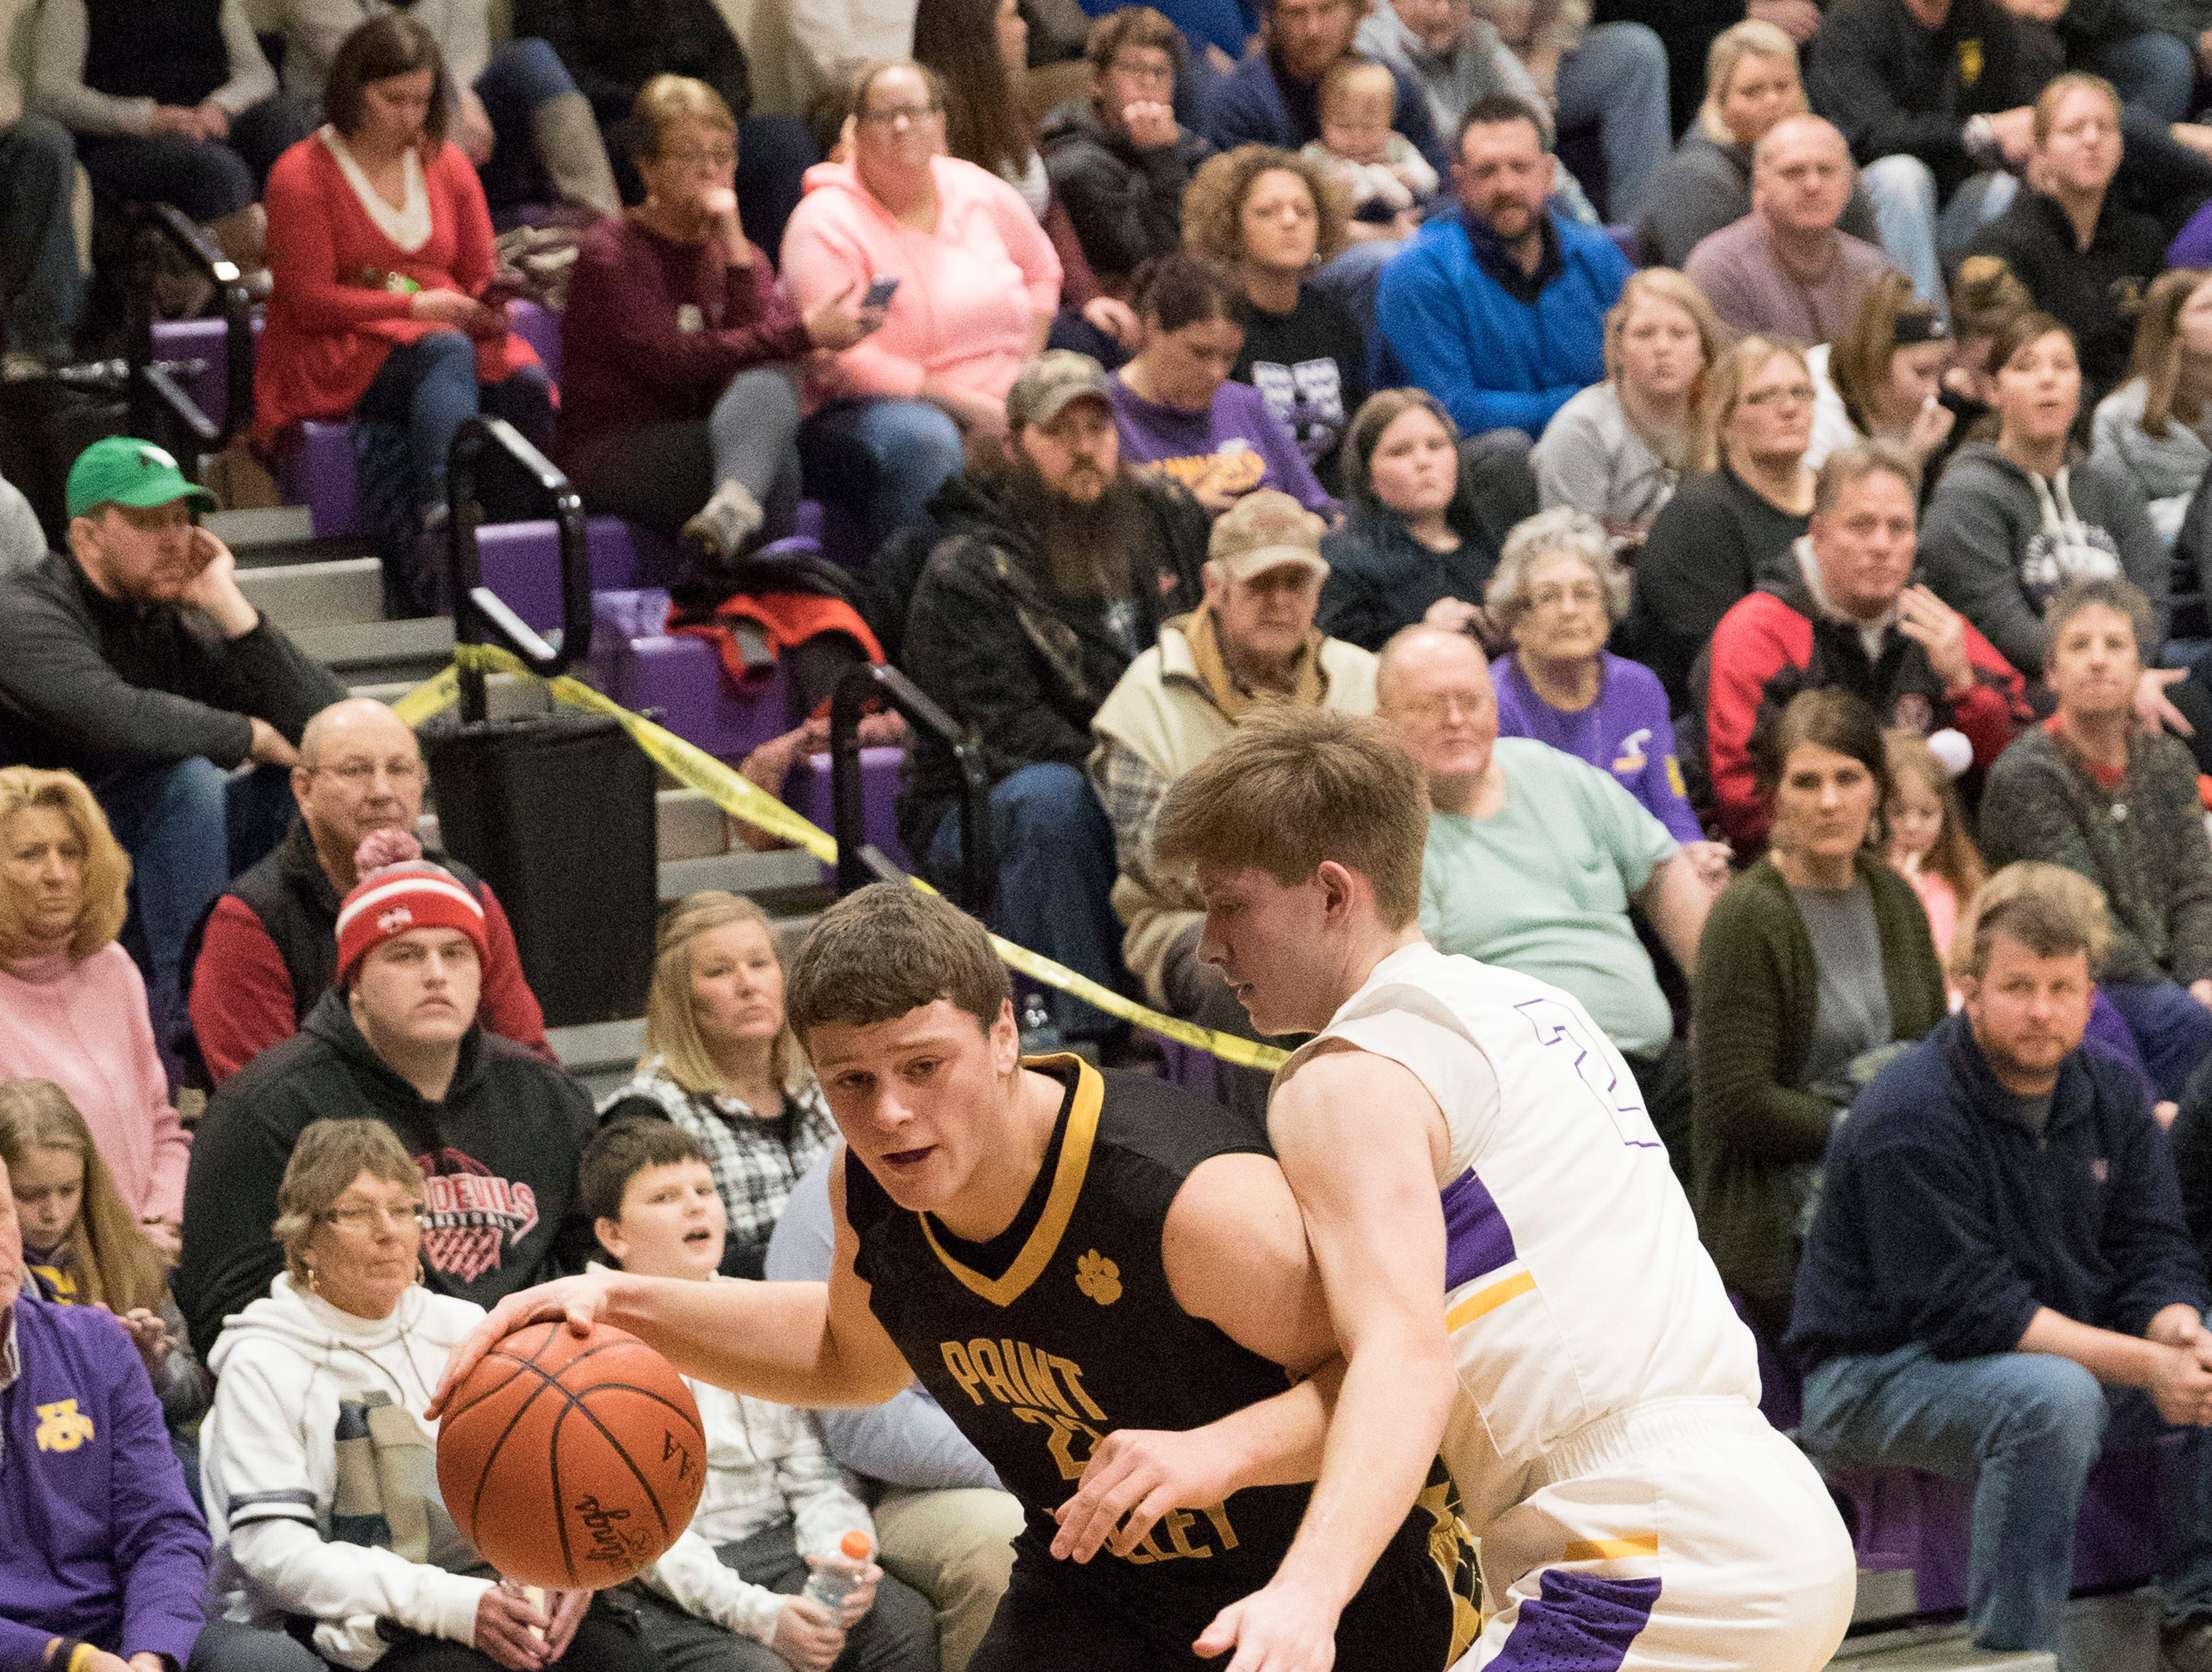 Paint Valley defeated Unioto 56-55 Friday night at Unioto High School, making Paint Valley fourth in the SVC.